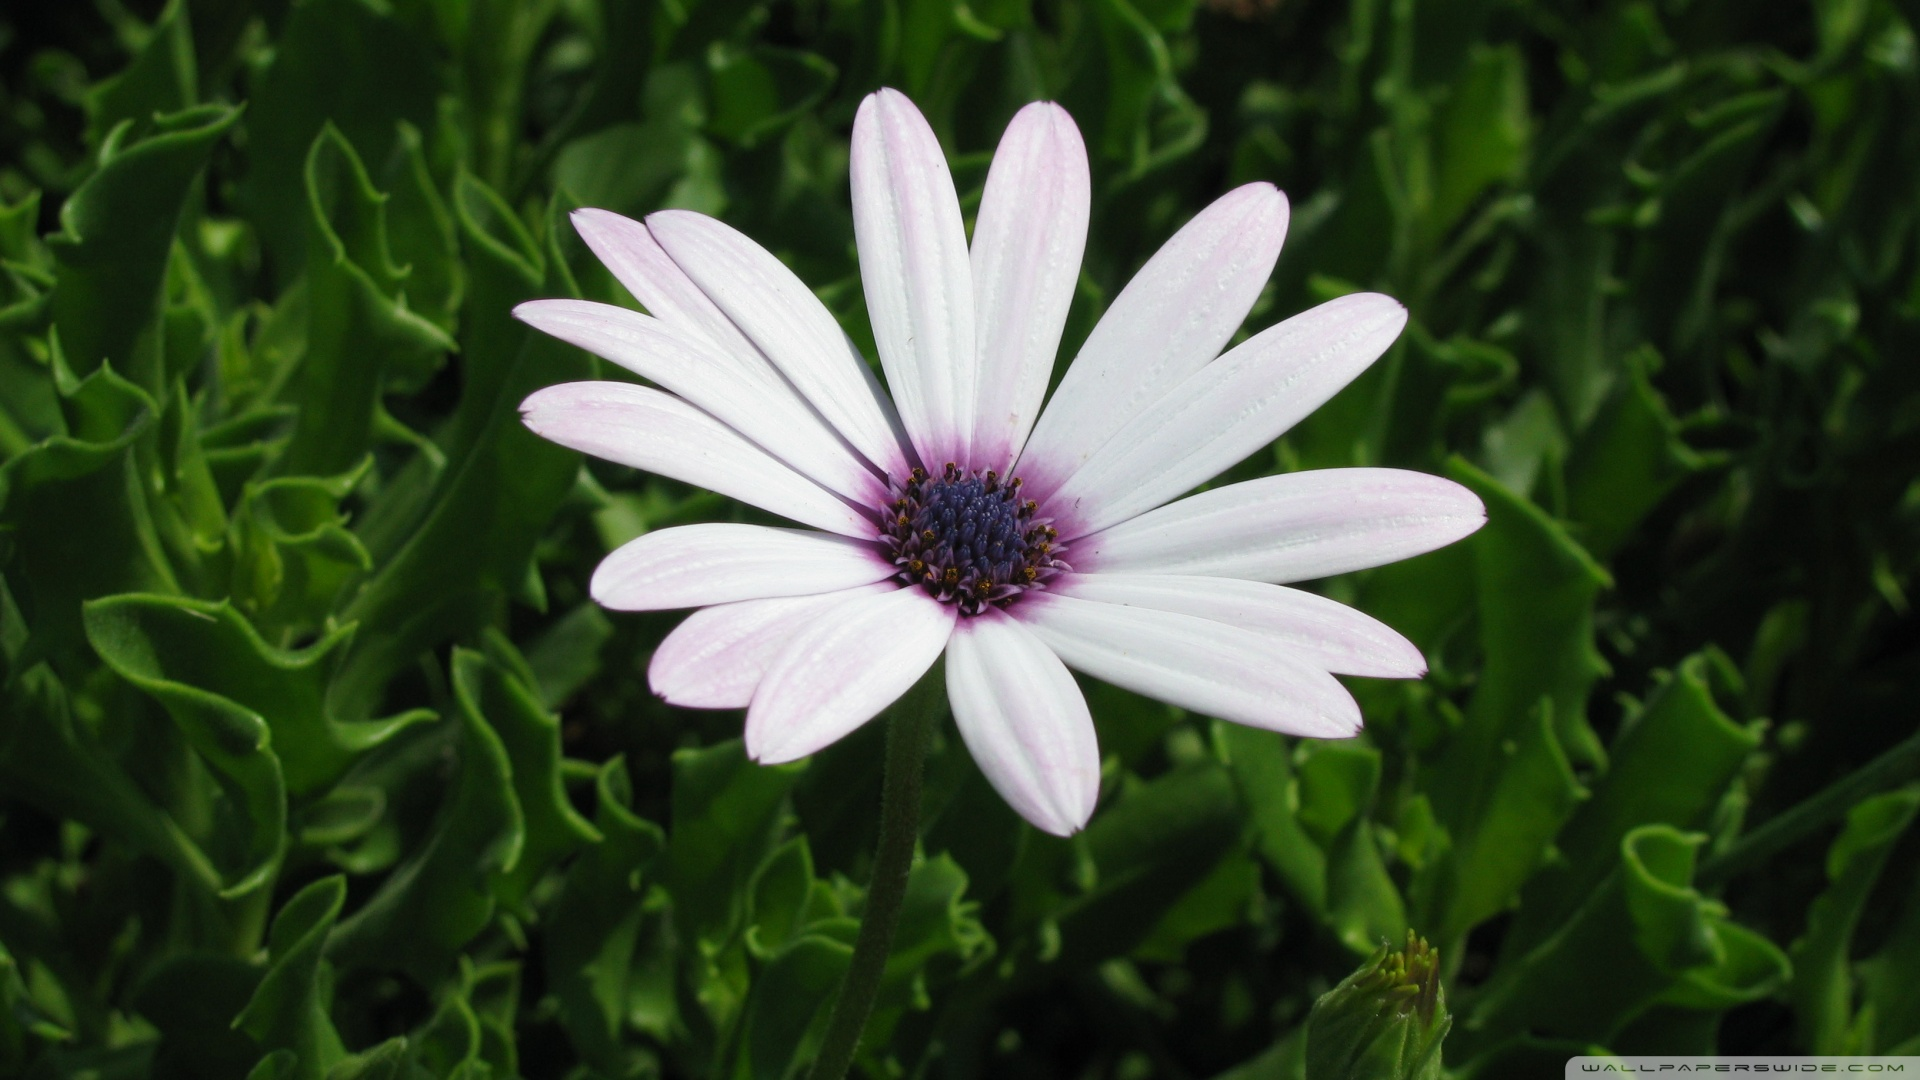 Cape-Daisy-Flower-1920x1080-Cape-Daisy-Flower-wallpaper-wp3603904